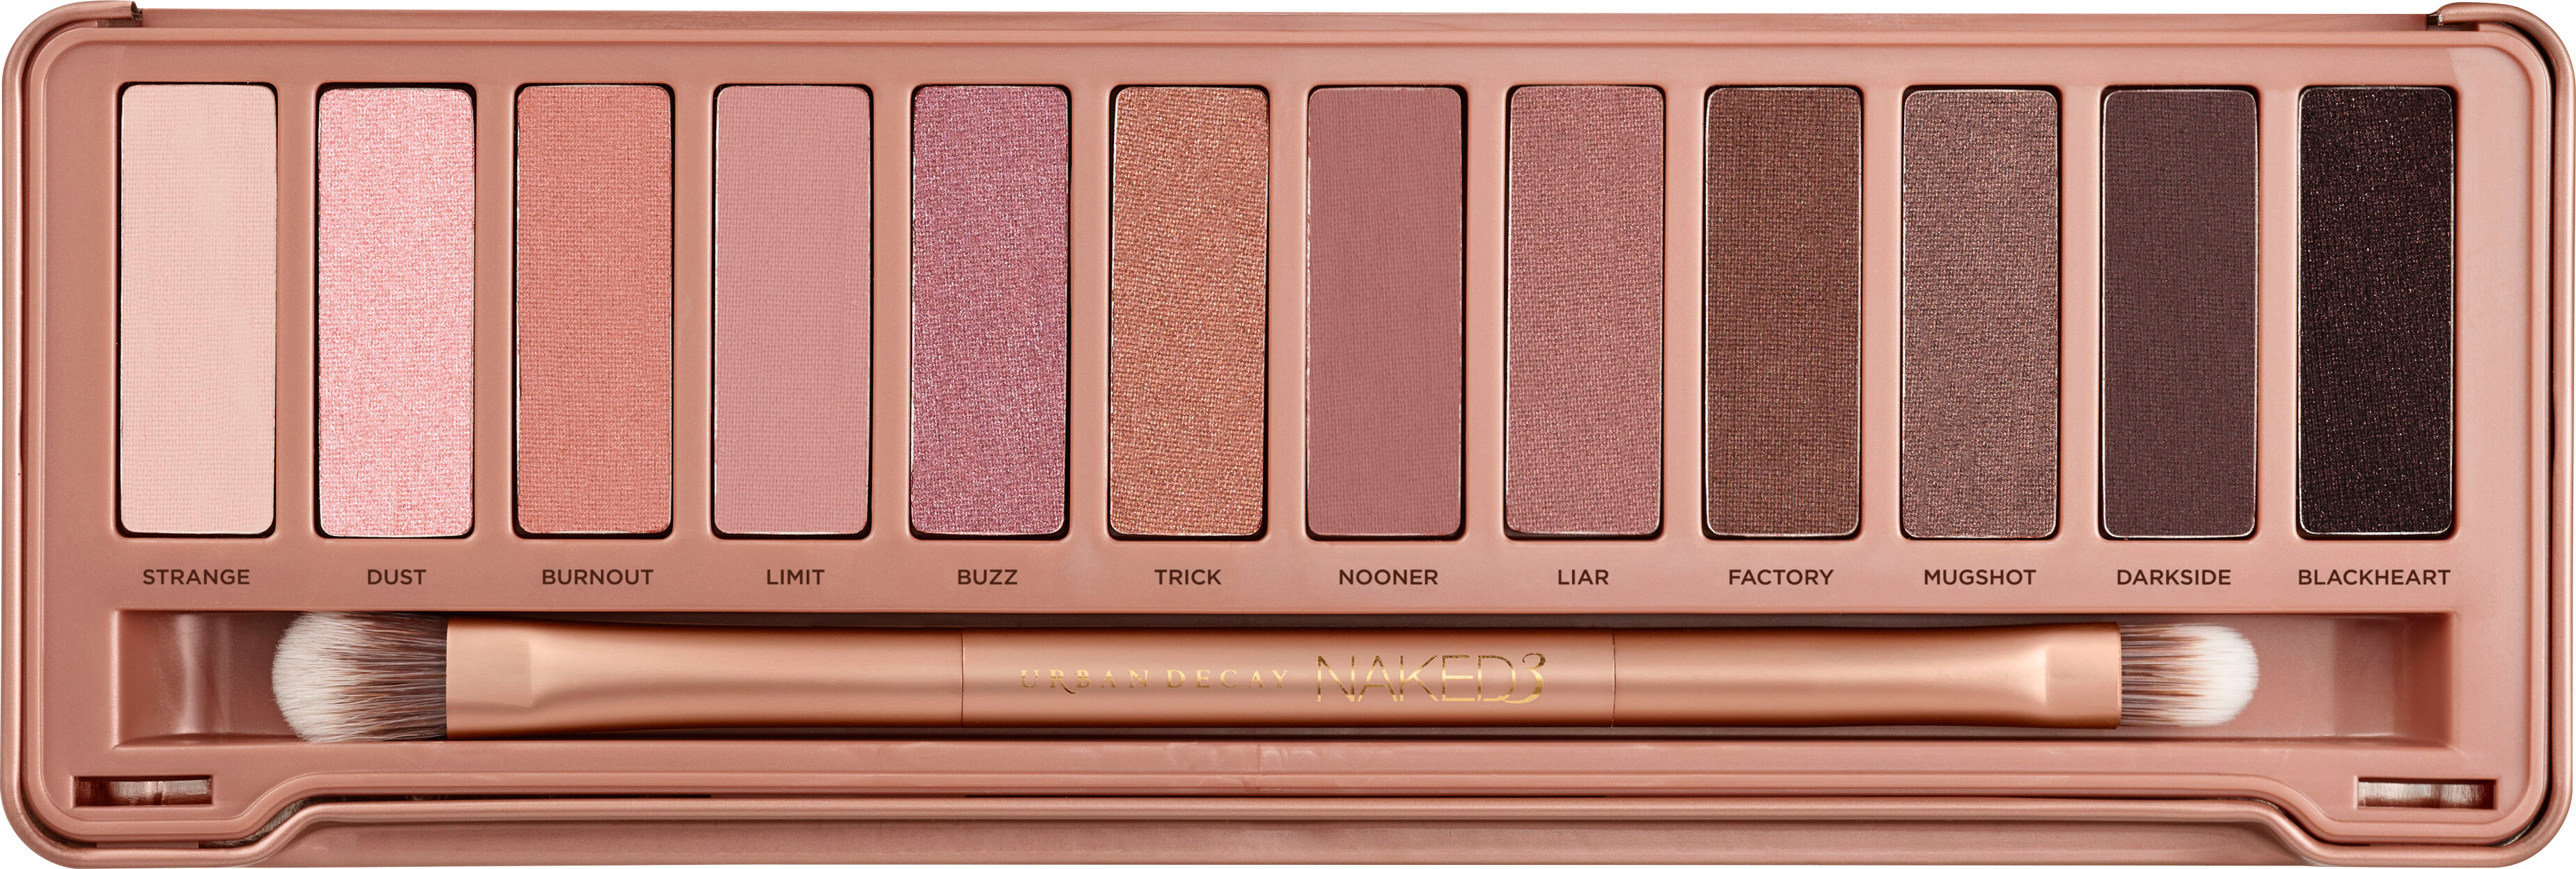 Urban Decay Naked 3 Eyeshadow Palette-9809